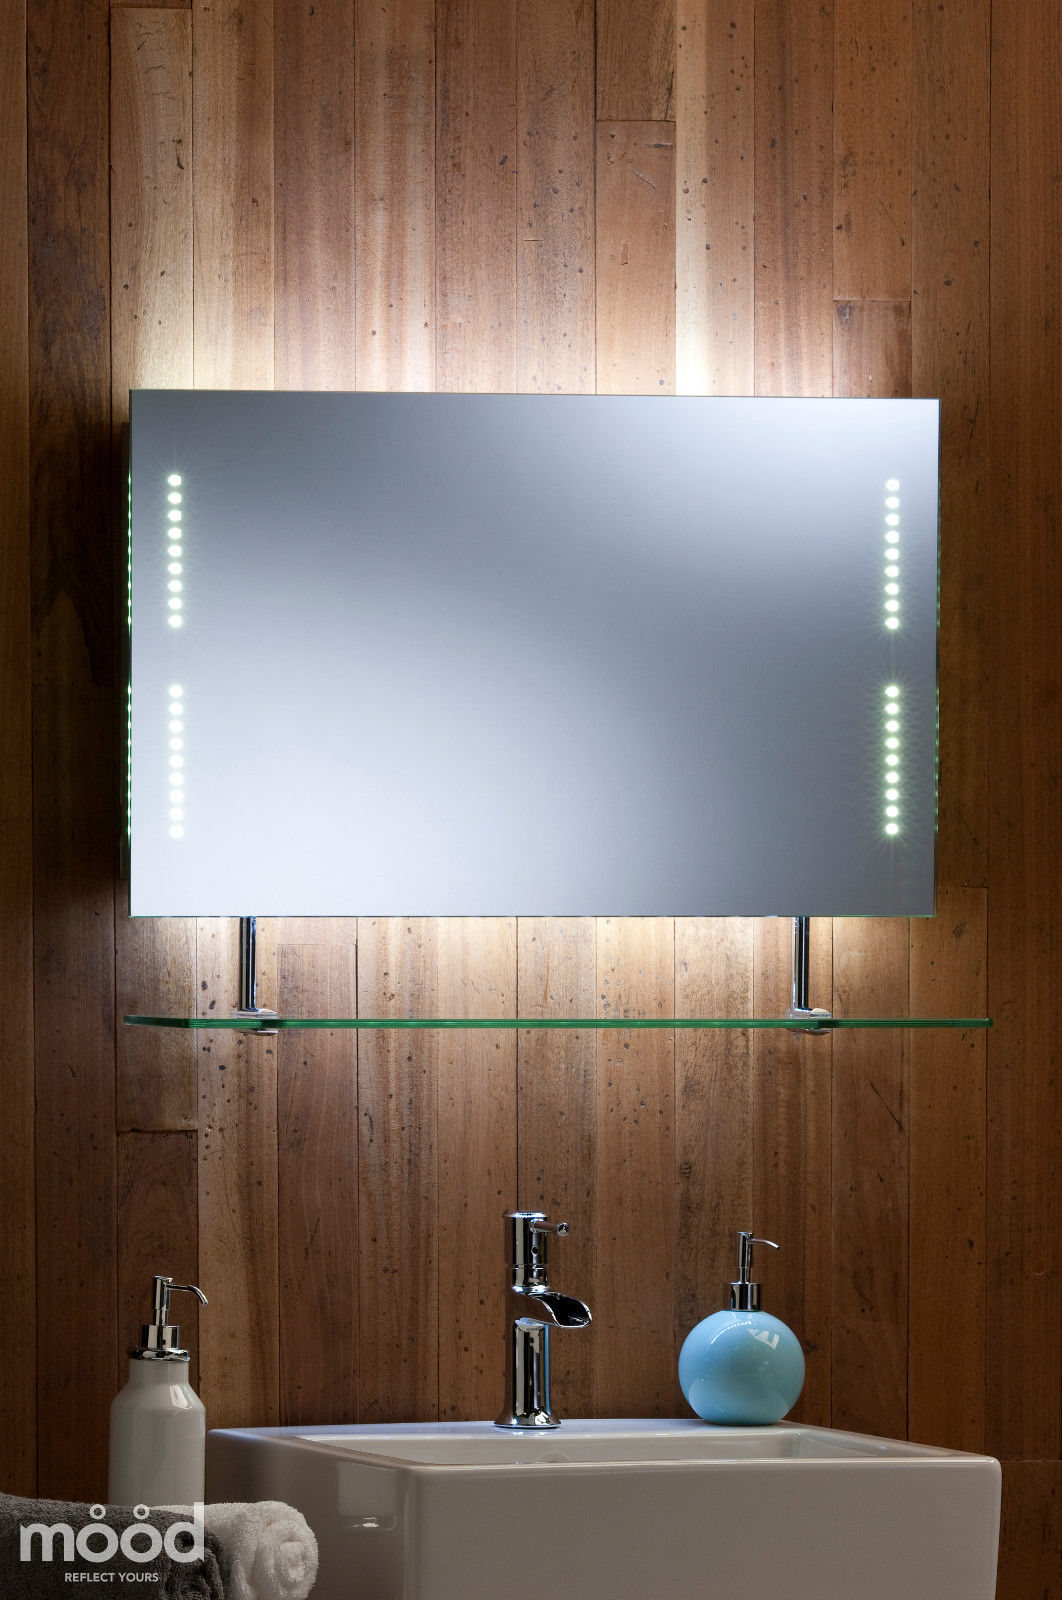 Bathroom mirror shelf shaver 70cm x led lights rectangle 30del ebay Neue design bathroom mirror